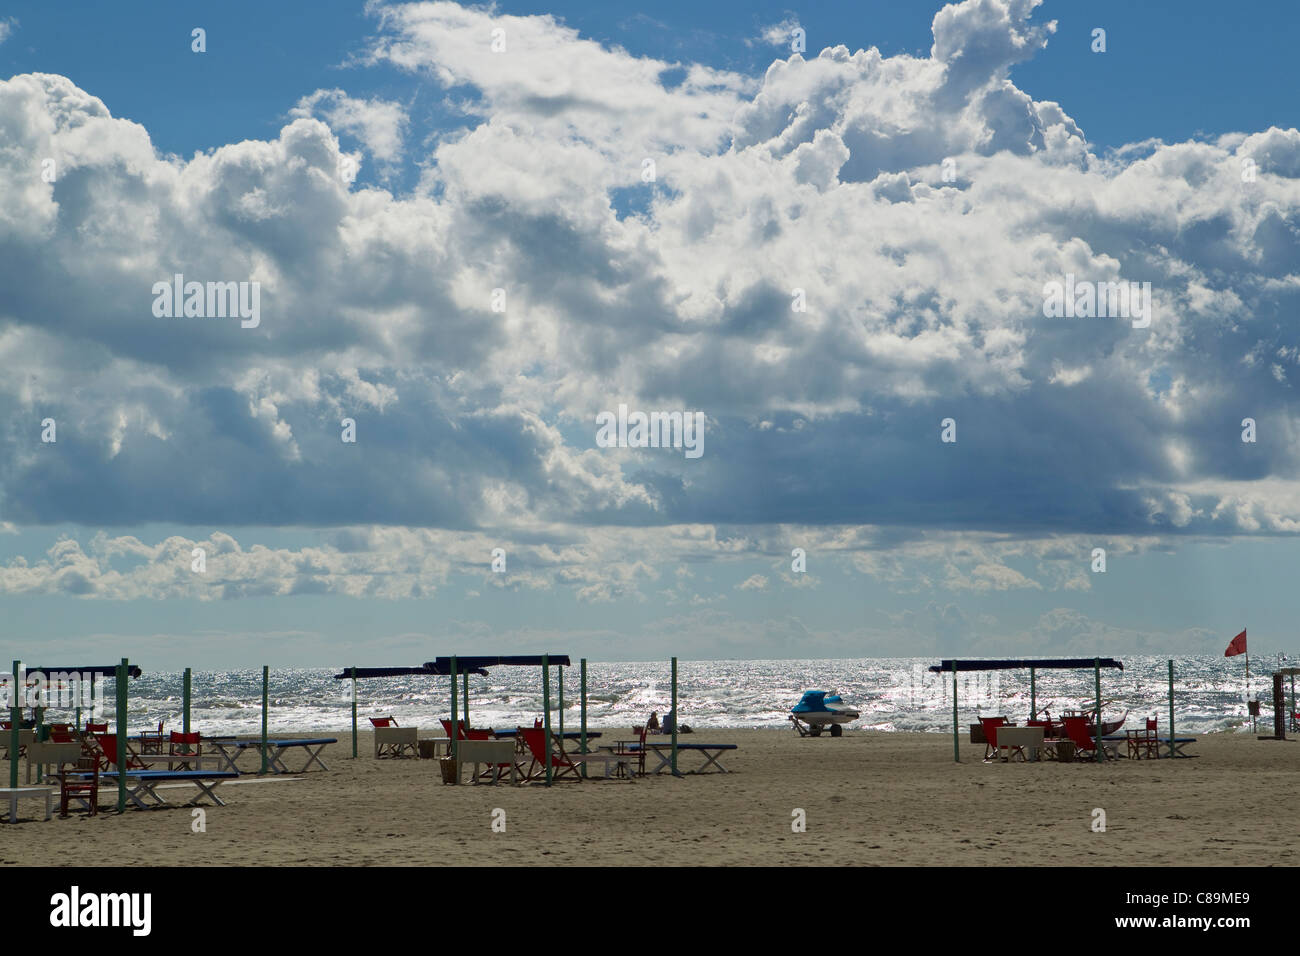 Italy, Forte dei Marmi, View of sandy beach with blue sky and white dense clouds - Stock Image